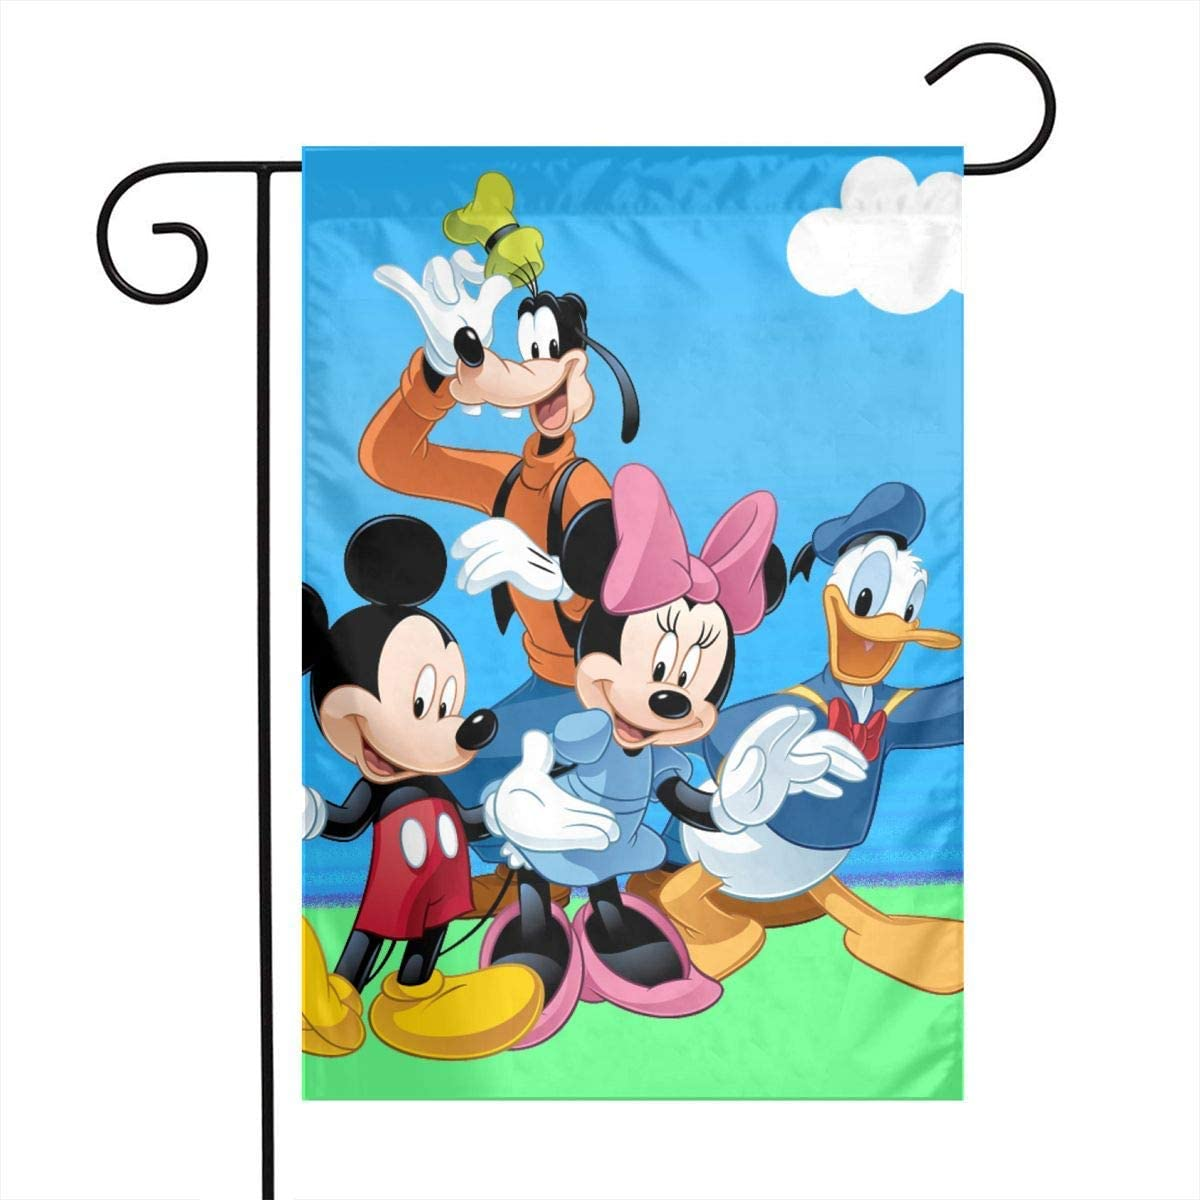 Garden Flag - Donald Duck Mickey Mouse and Goofy Unique Decorative Outdoor Yard Flags for Your Home 12 X 18 Inches - -Fashion Black